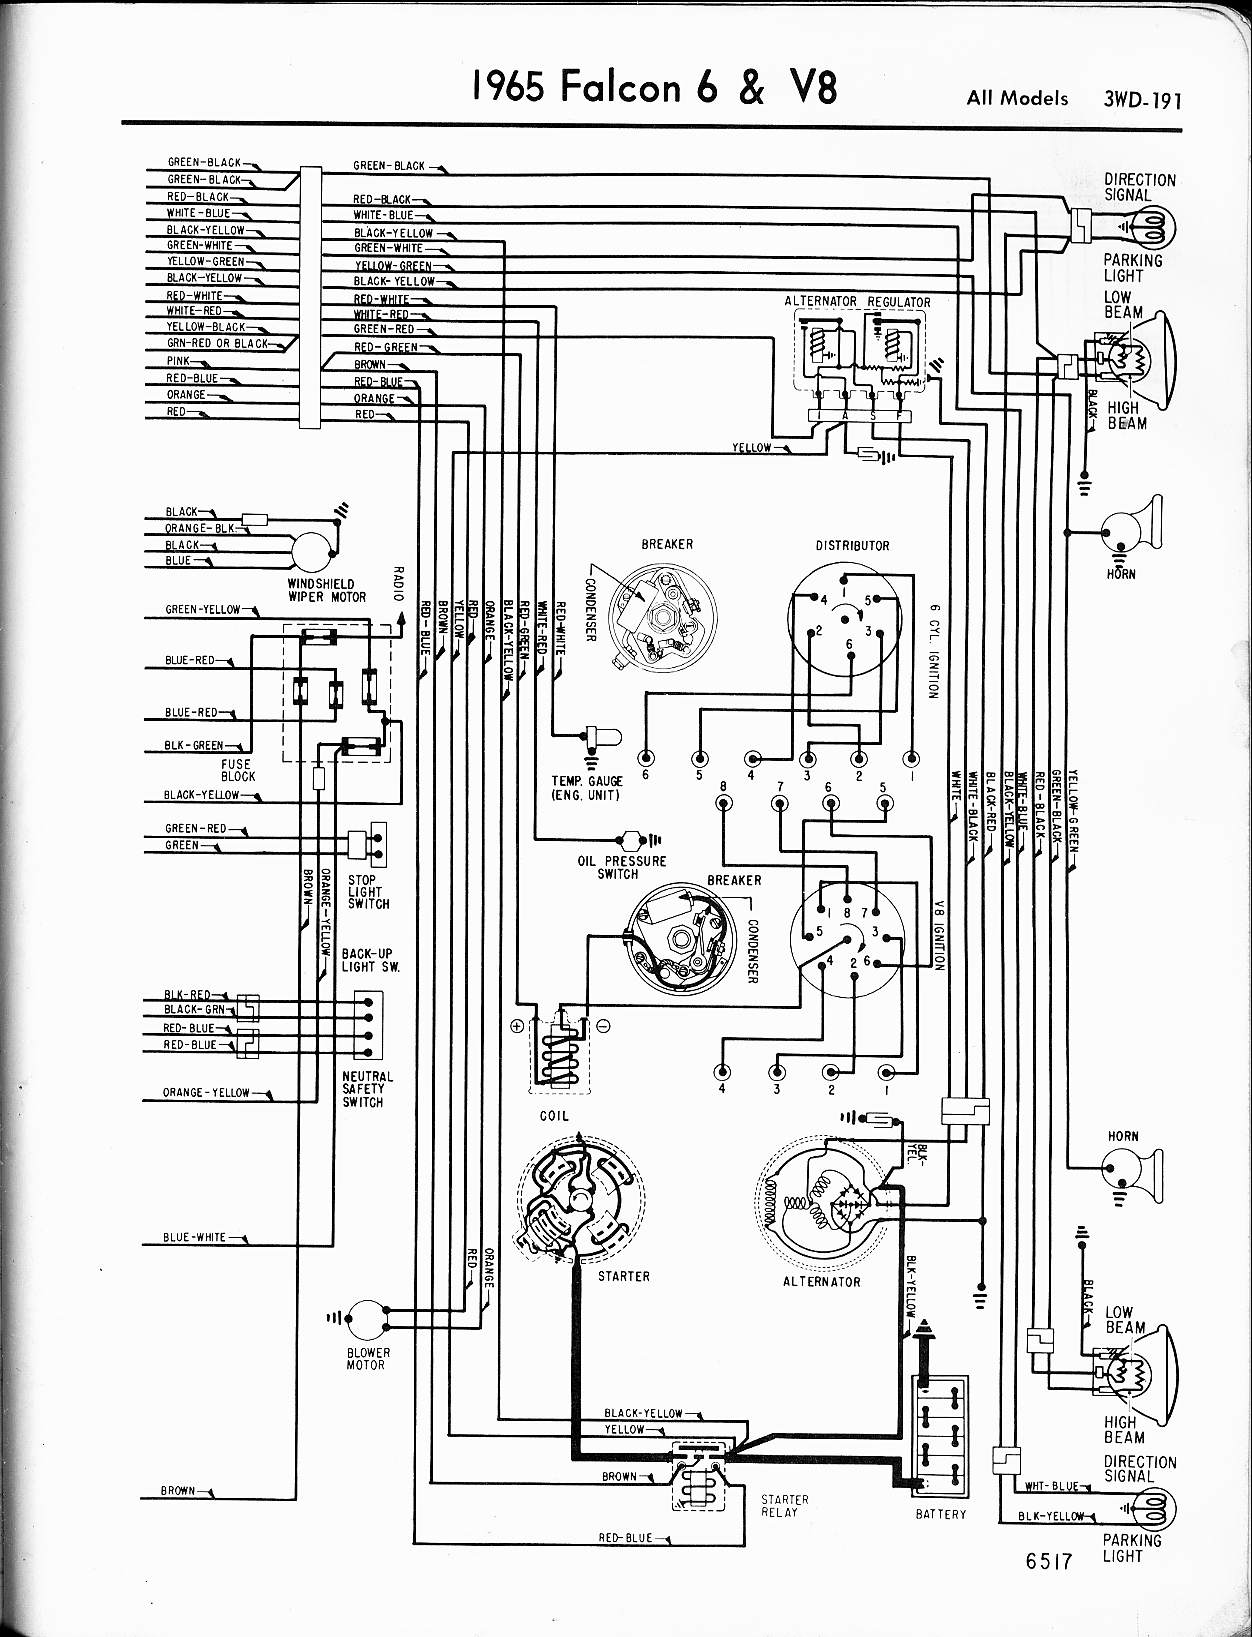 MWire5765 191 engine wire diagram for 65 falcon 65 falcon hot rod \u2022 wiring 1965 ford mustang wiring diagrams at sewacar.co